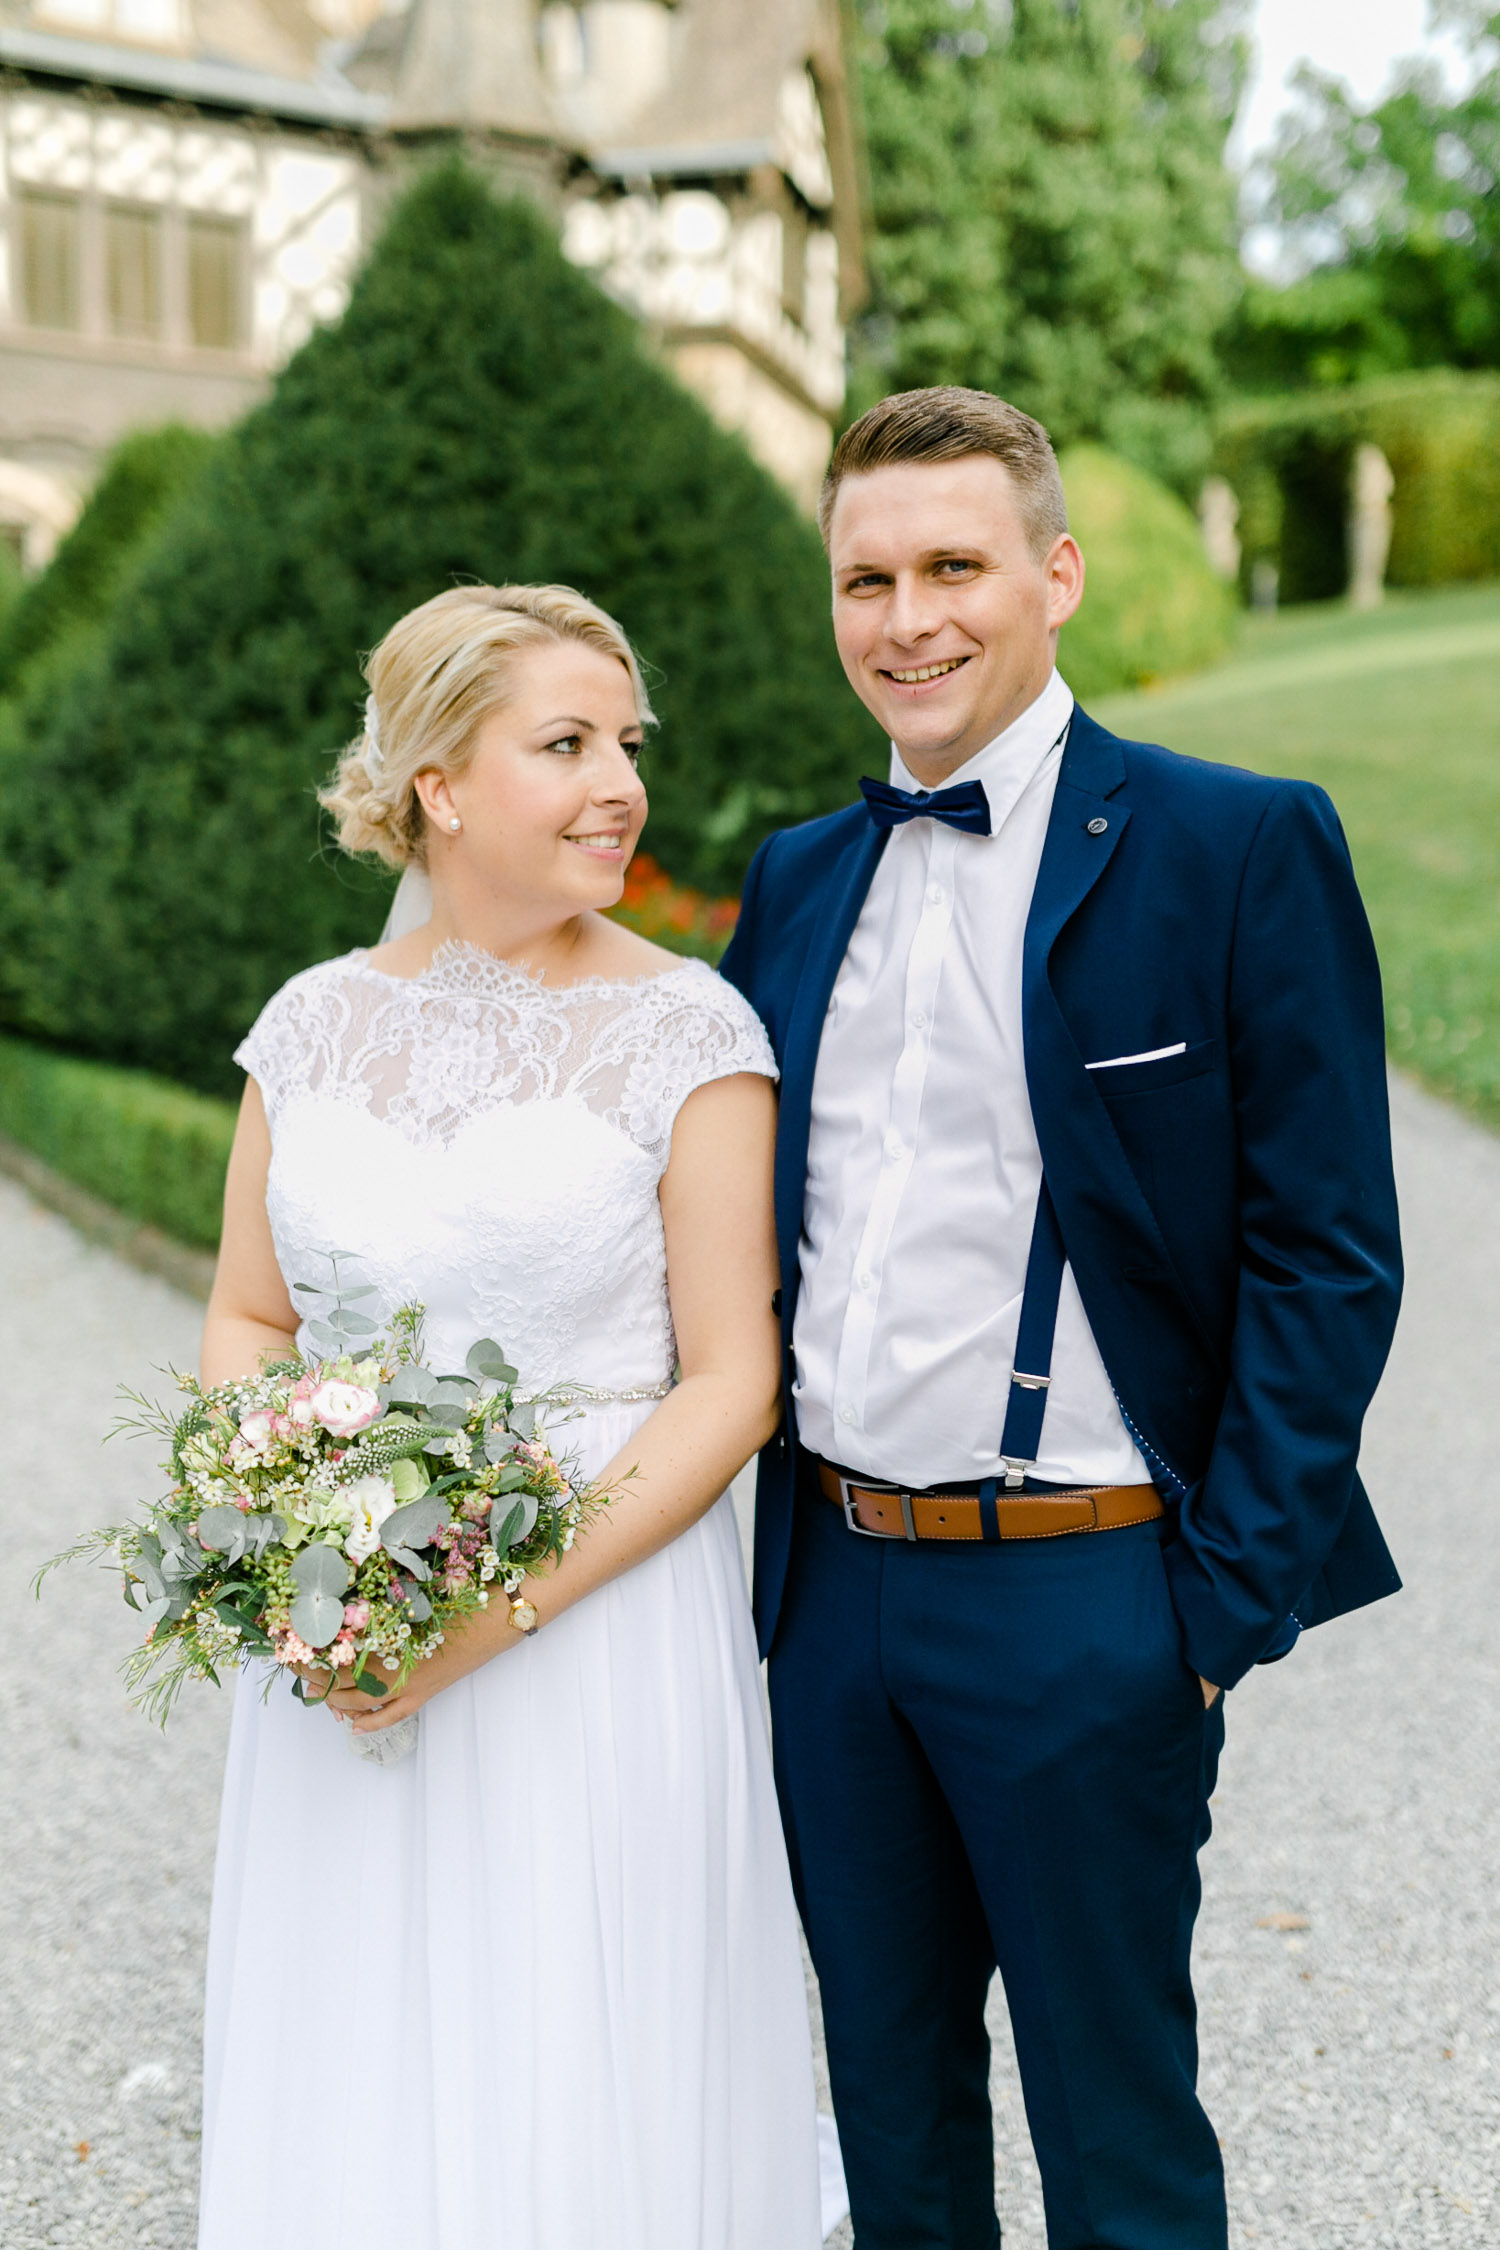 weddingphotographer_giessen-51